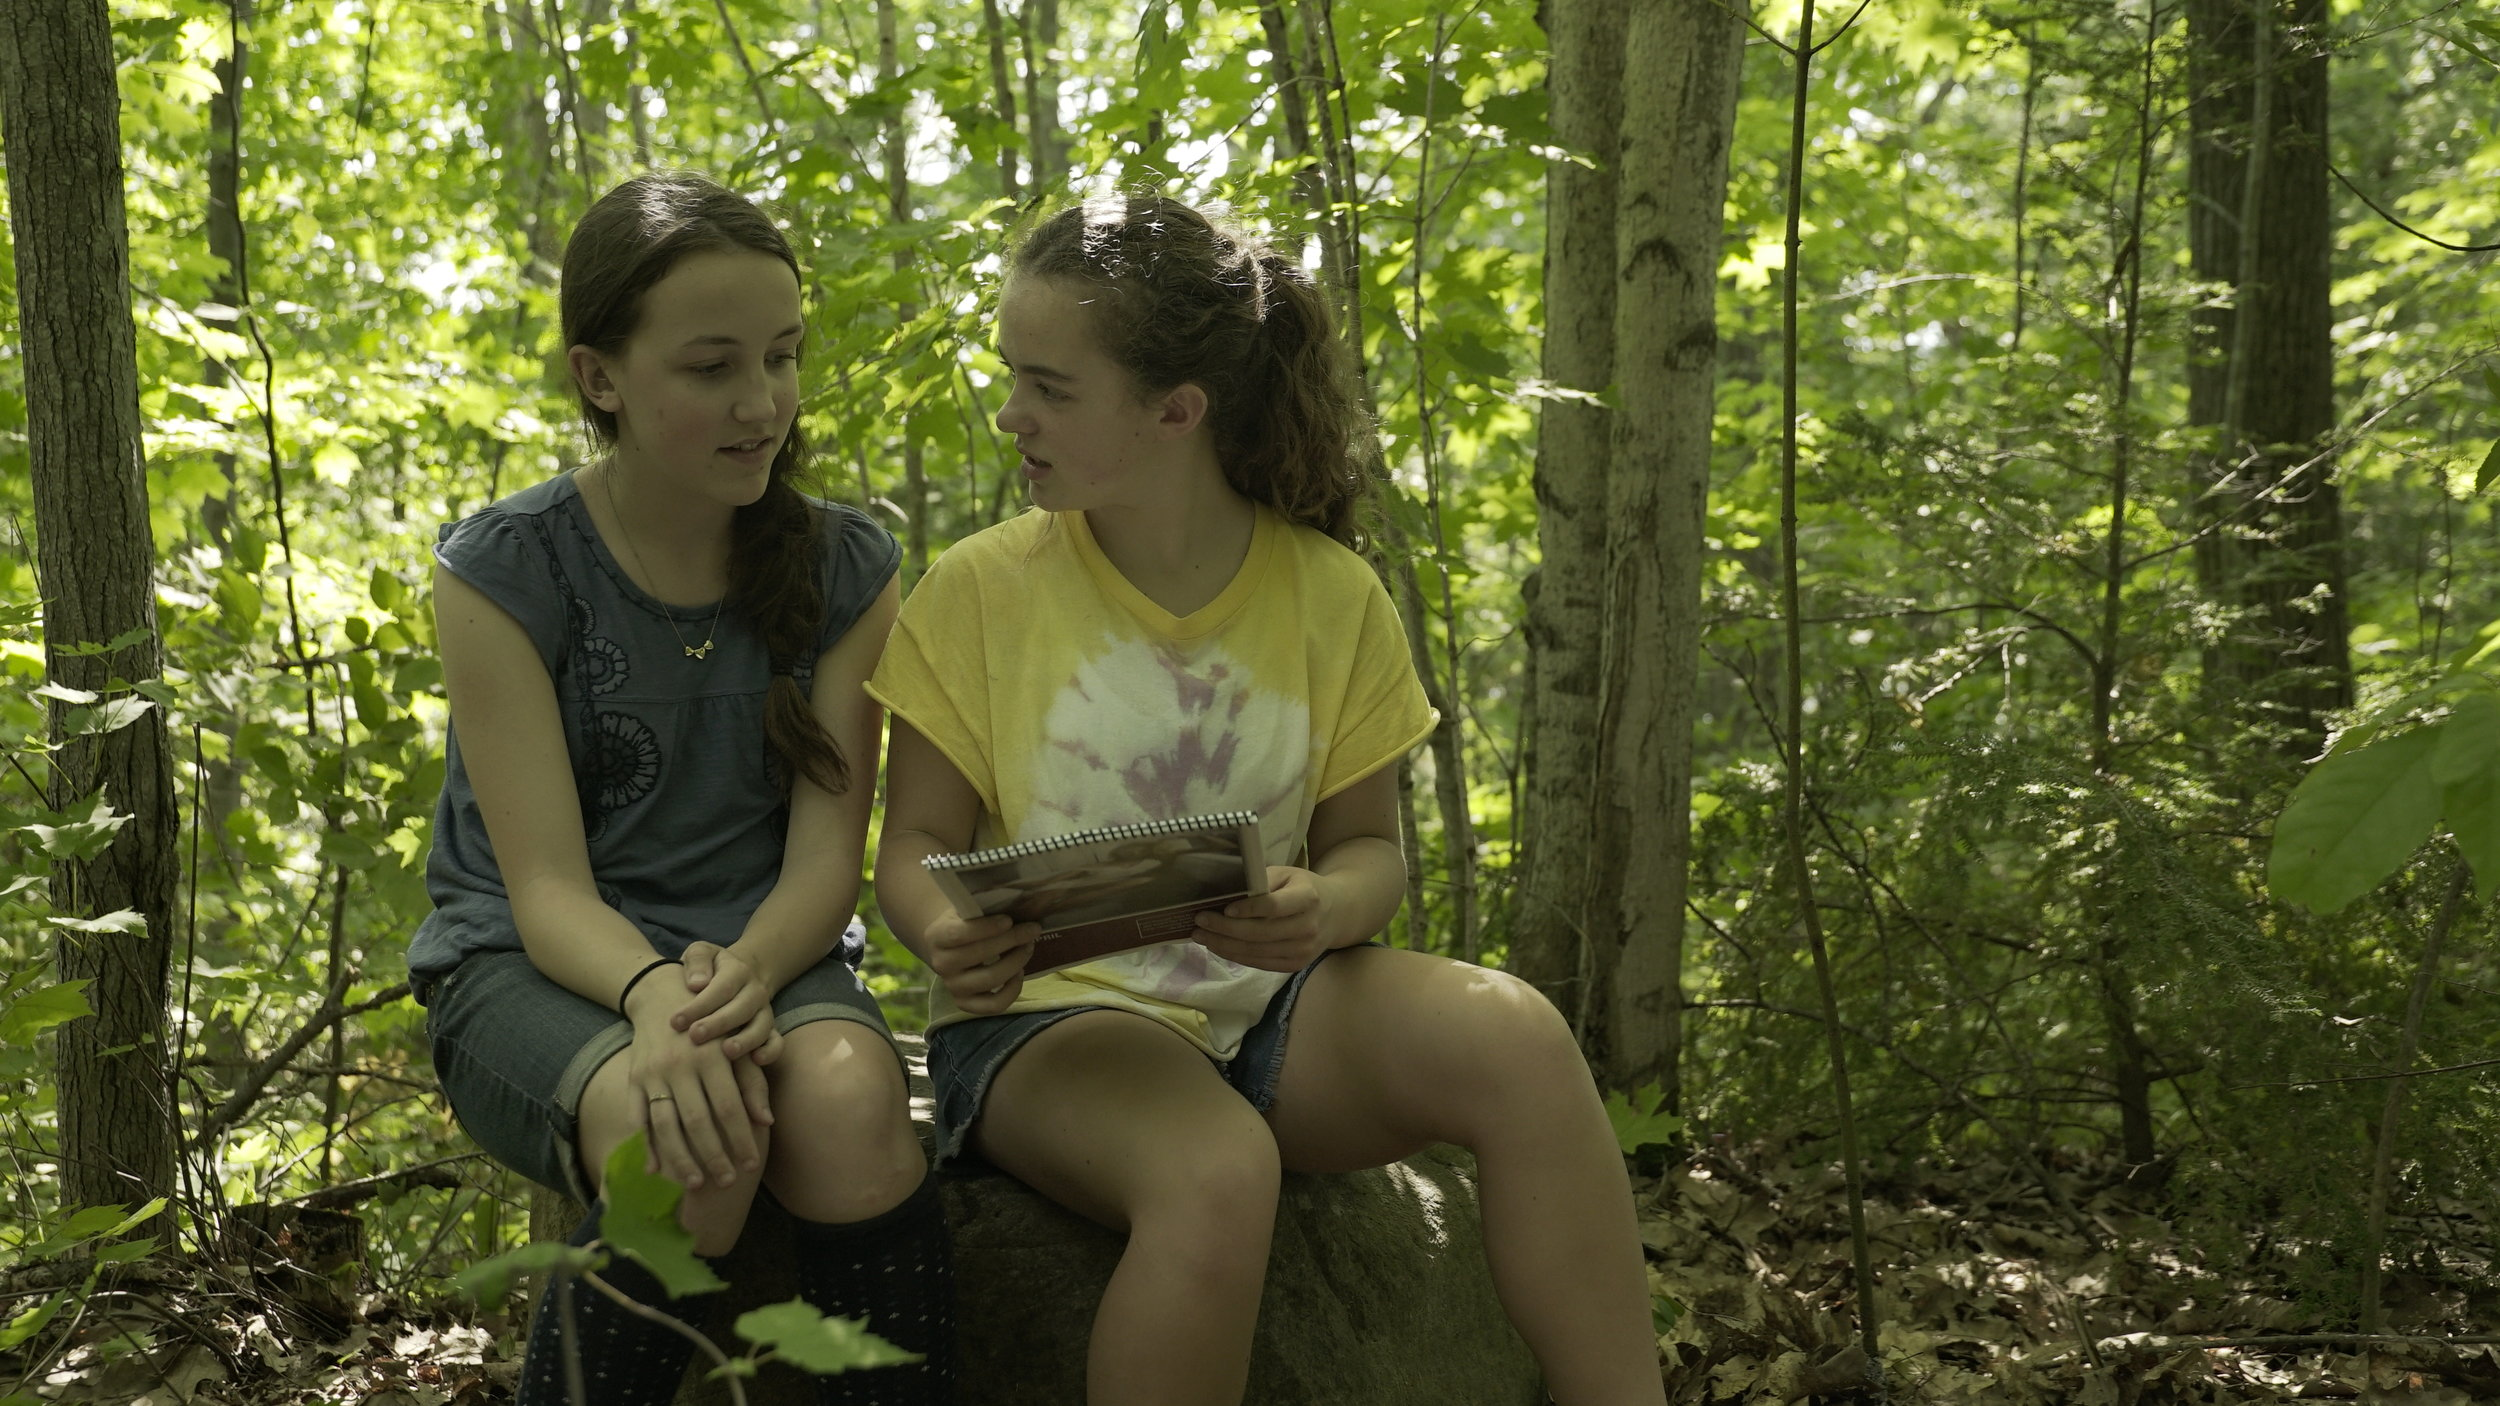 Charlotte Salisbury and Lucinda Armstrong Hall: An intense summer for unlikely best friends